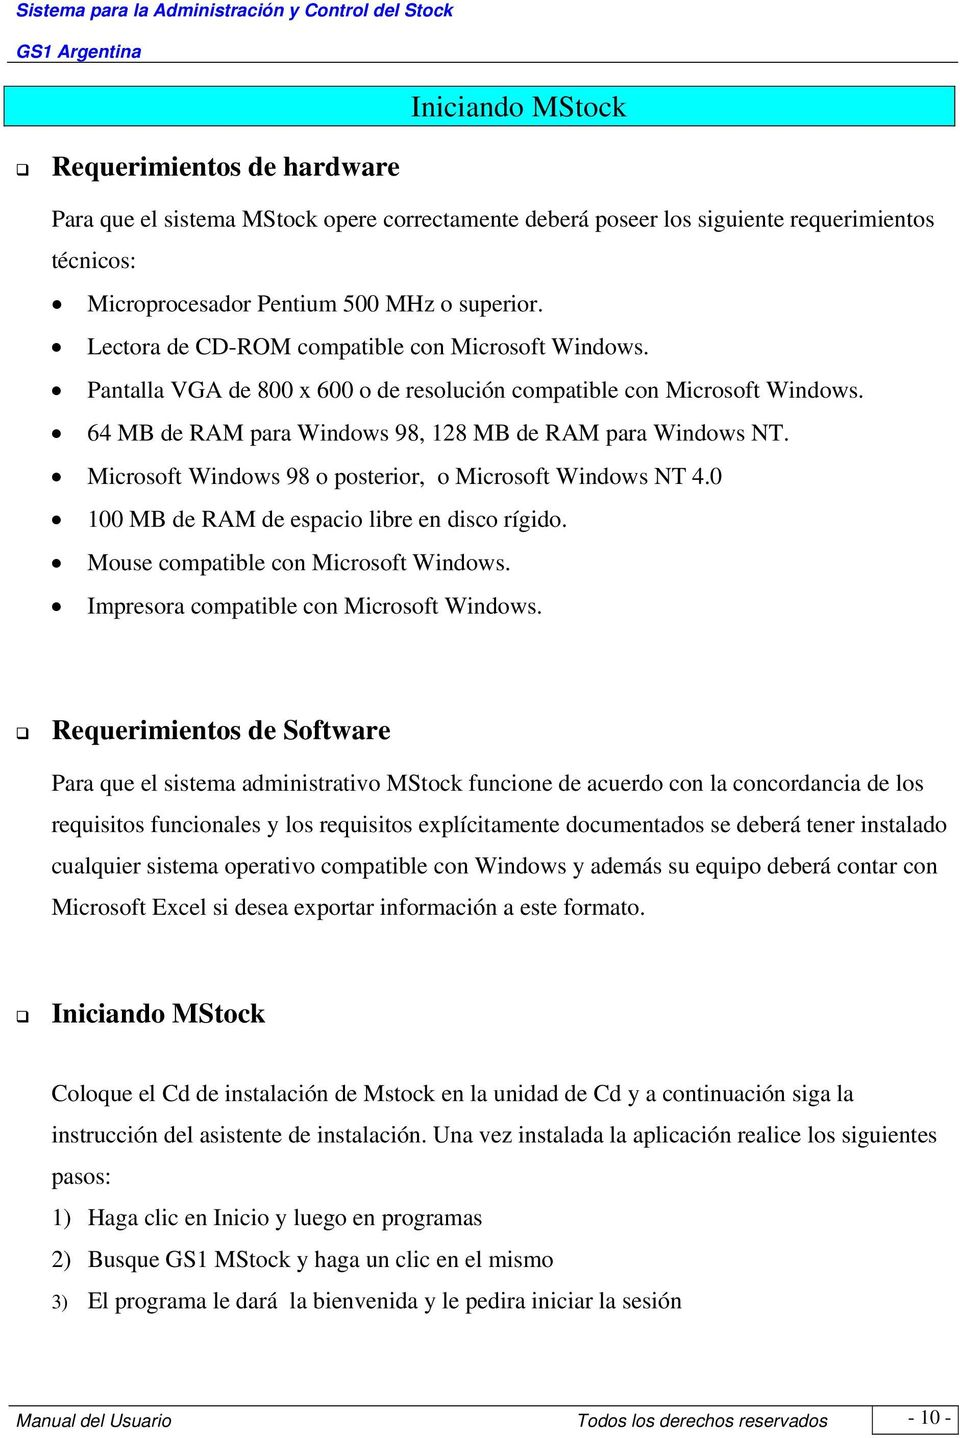 Microsoft Windows 98 o posterior, o Microsoft Windows NT 4.0 100 MB de RAM de espacio libre en disco rígido. Mouse compatible con Microsoft Windows. Impresora compatible con Microsoft Windows.